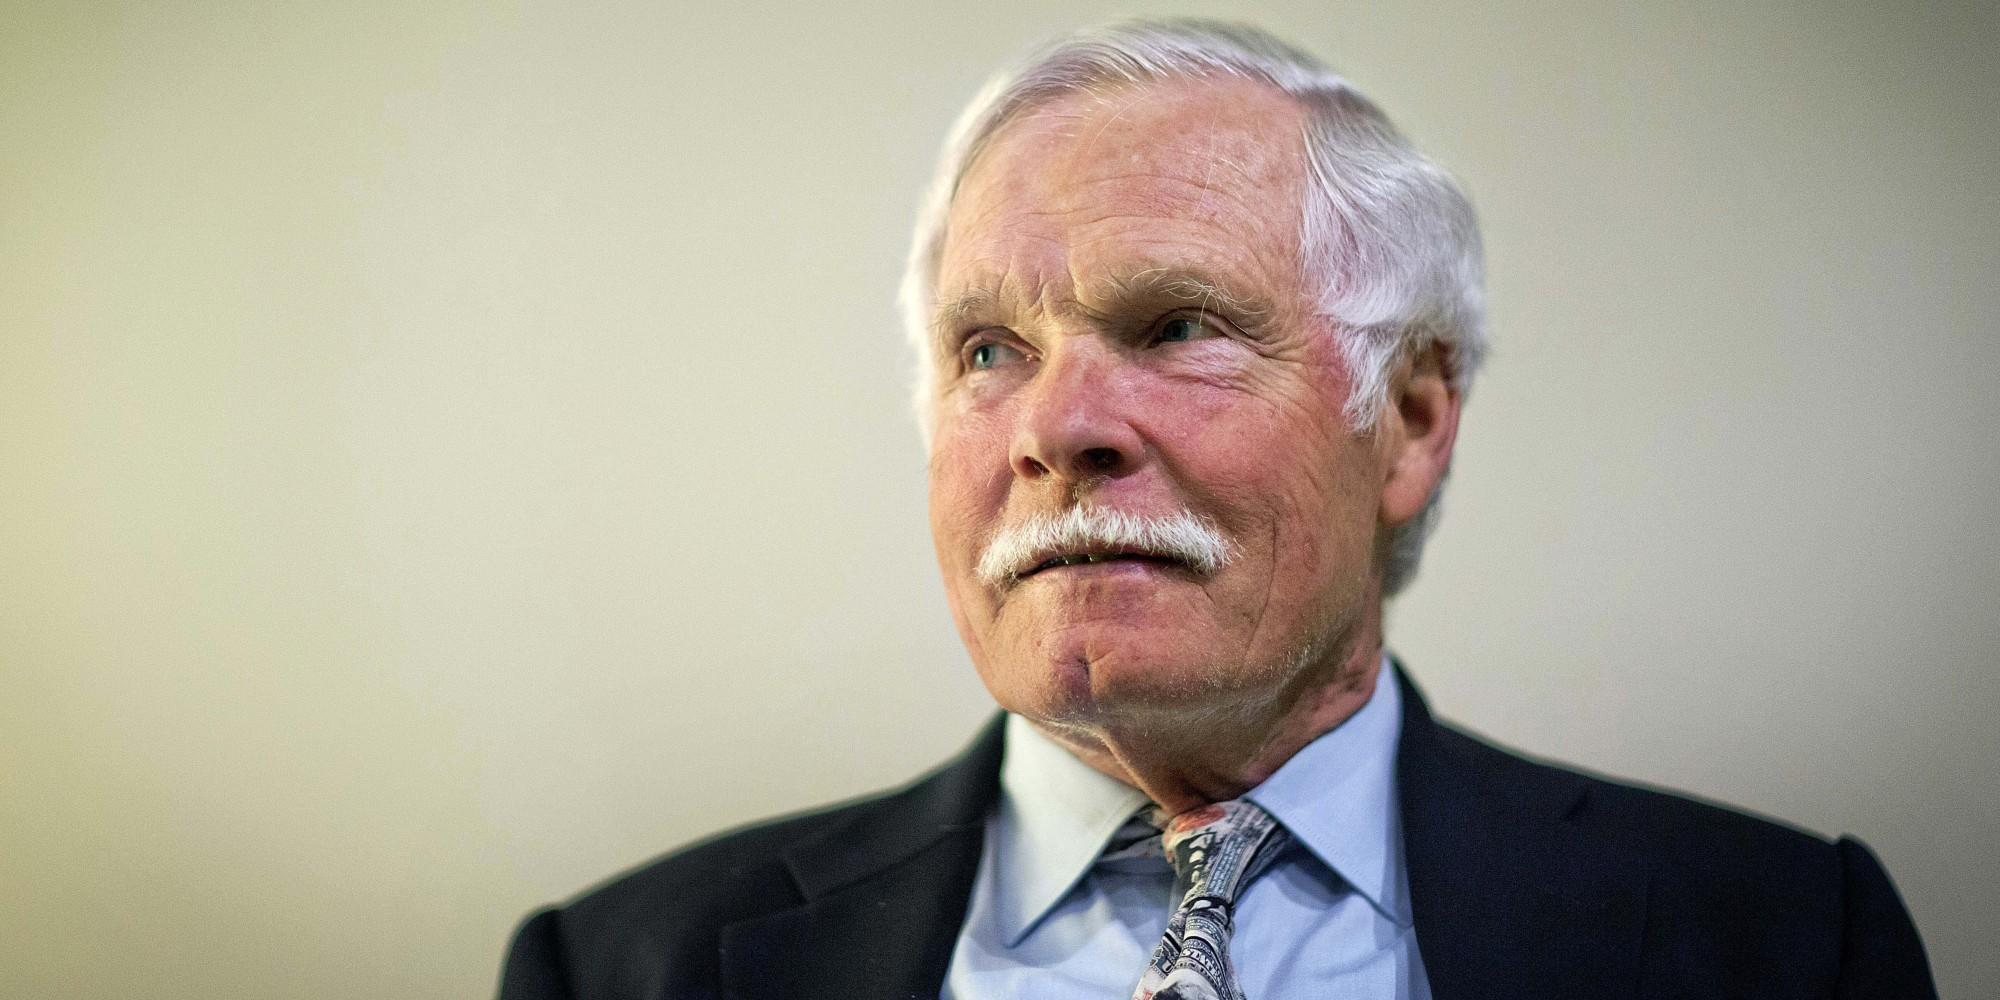 In this Friday, Dec. 6, 2013, photo, Ted Turner sits for a portrait in Atlanta. Turner told The Associated Press in a recent interview that when Turner Field is demolished in four years, he hopes the city of Atlanta could turn the vacant area into green space. In November, the Atlanta Braves announced they are moving from Turner Field into a new 42,000-seat stadium complex in Cobb County in 2017. The old stadium, which was named after the 75-year-old media mogul, will be torn down after the Braves leave for their location in the suburbs. Turner, the former owner of the Braves, said he is still trying to fathom the move. (AP Photo/David Goldman)